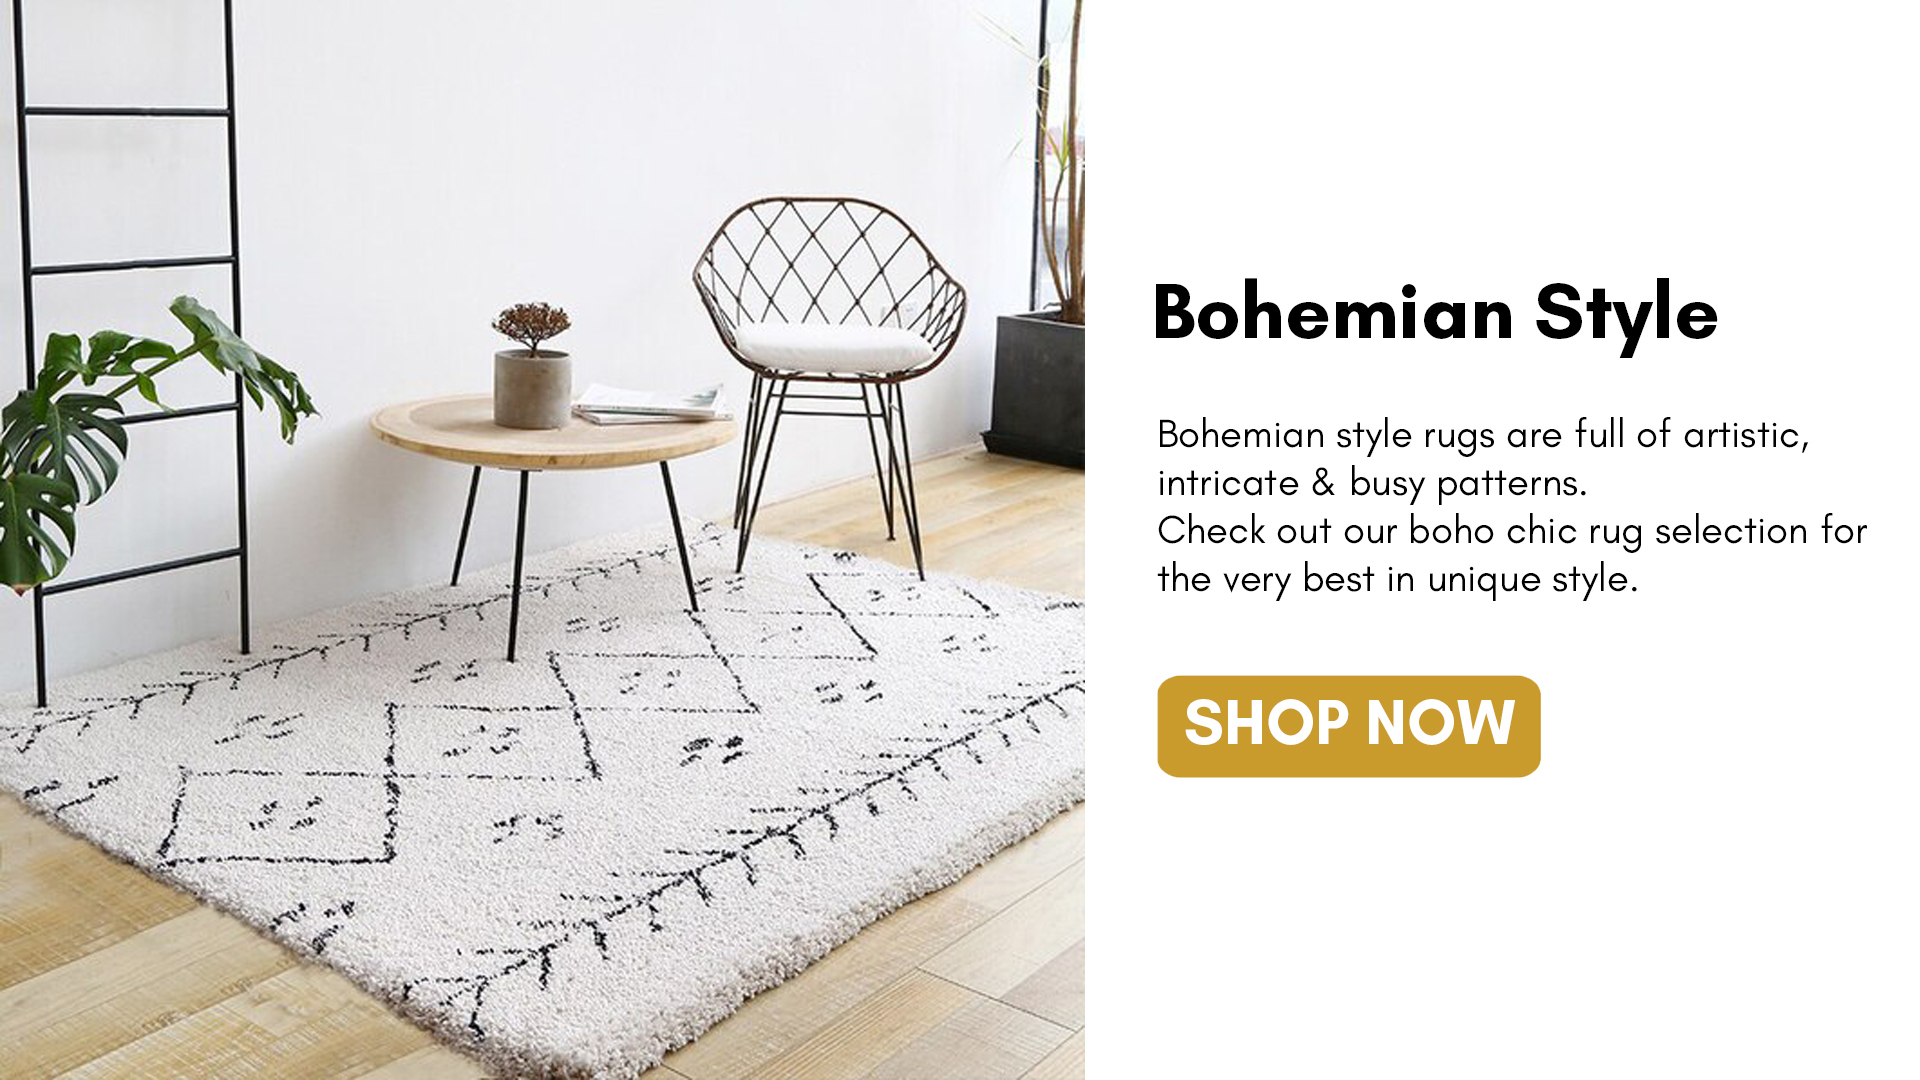 Perfect for any home styles! Our high - quality Bohemian Style Rugs are always on trend and have unique design. Available in different sizes to suit most home style.